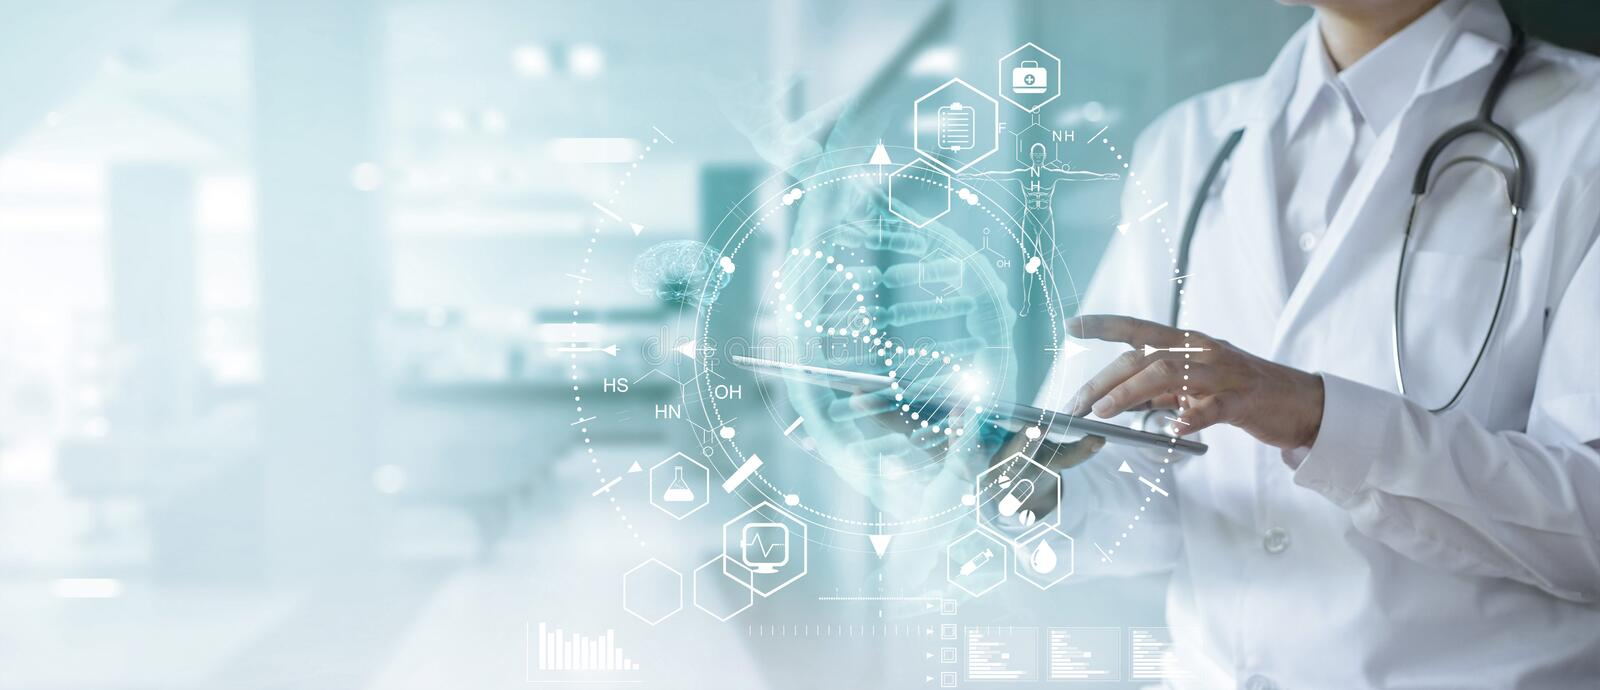 Medicine doctor touching electronic medical record on tablet. DNA. Digital healthcare and network connection on hologram. royalty free stock image